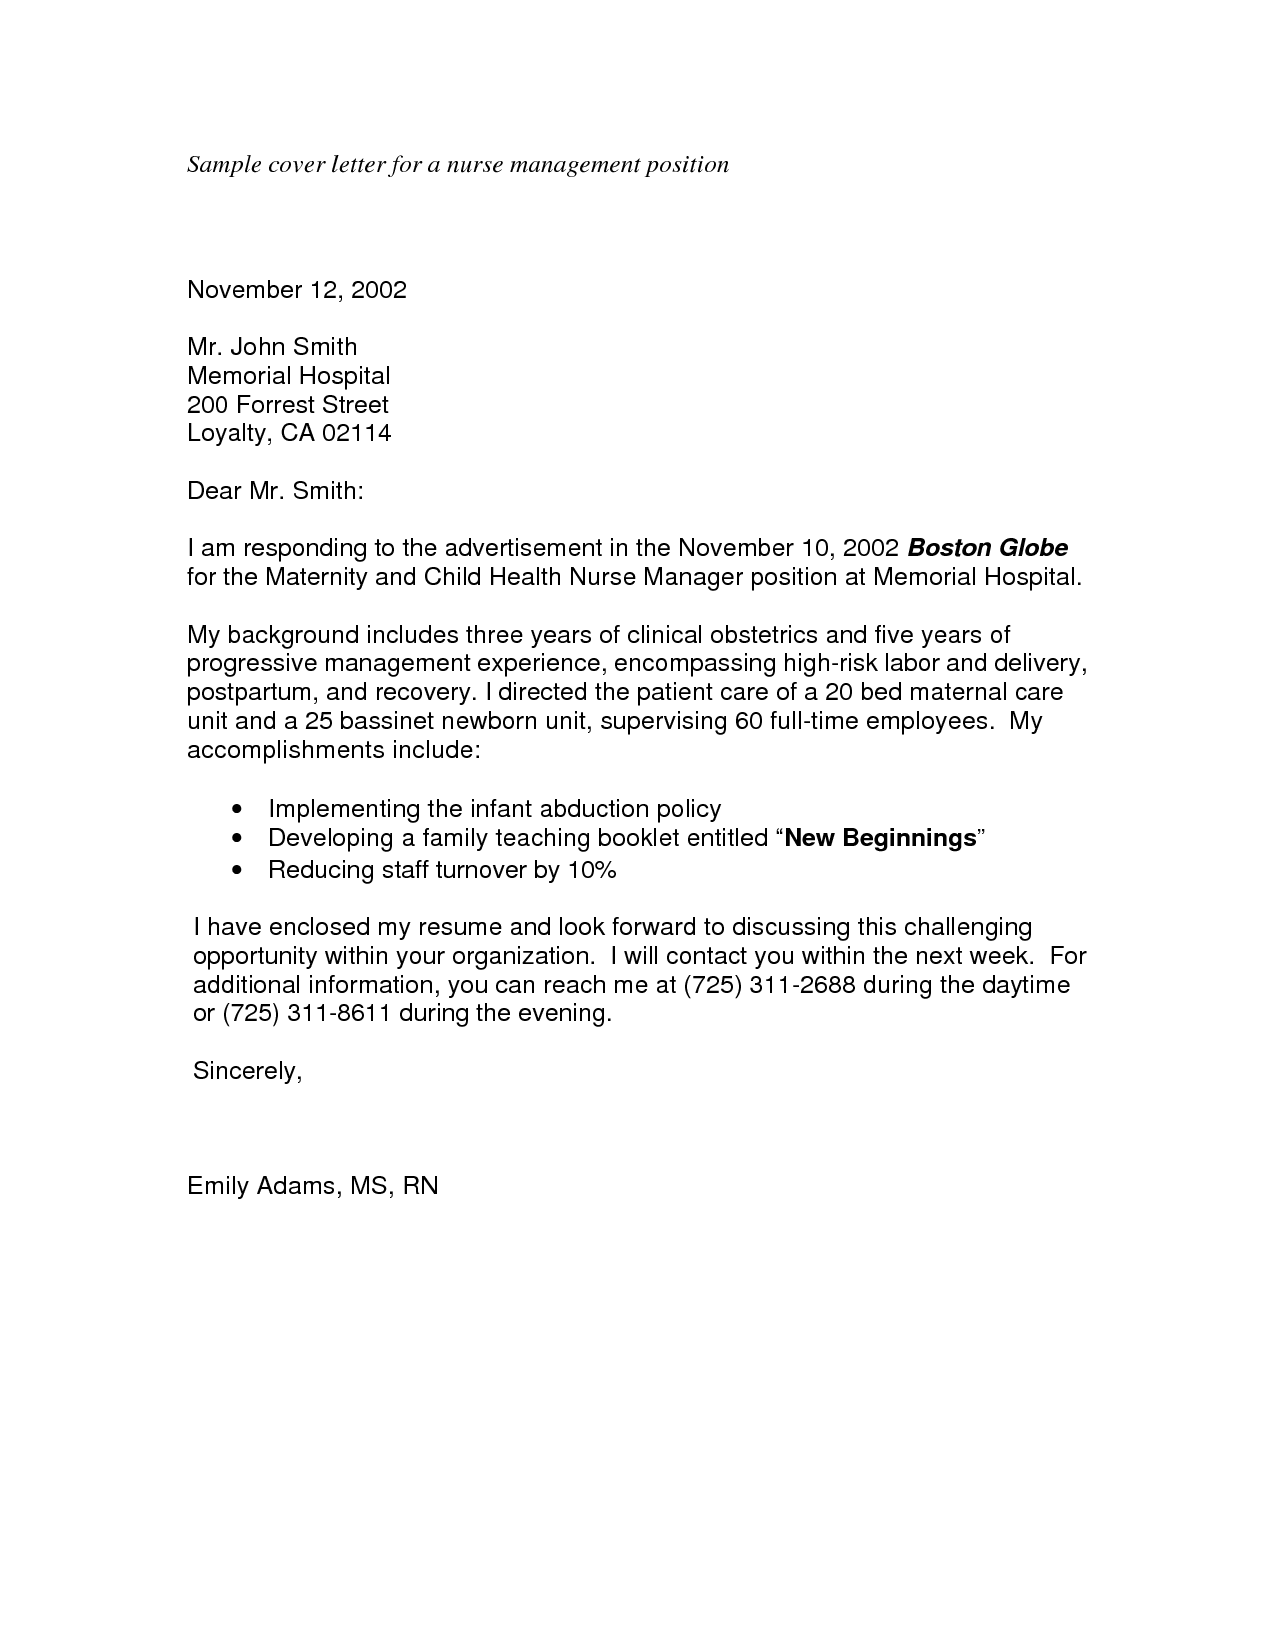 sample cover letter for applying a job